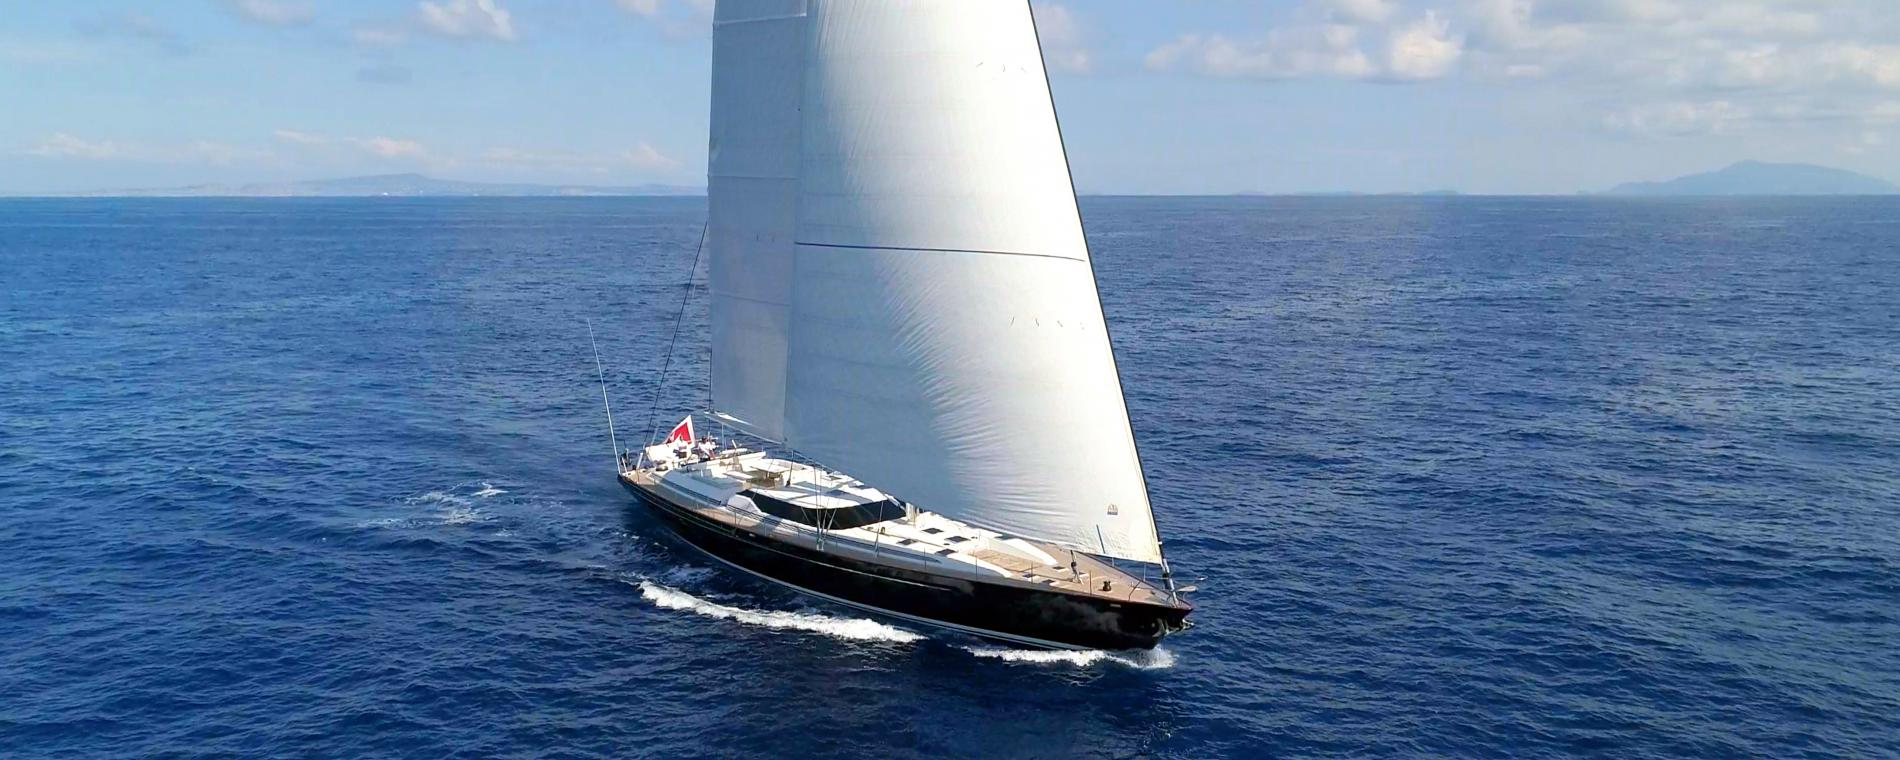 IMAGINE - Luxury Sailing Yacht For Charter - Exterior Design - Img 1 | C&N